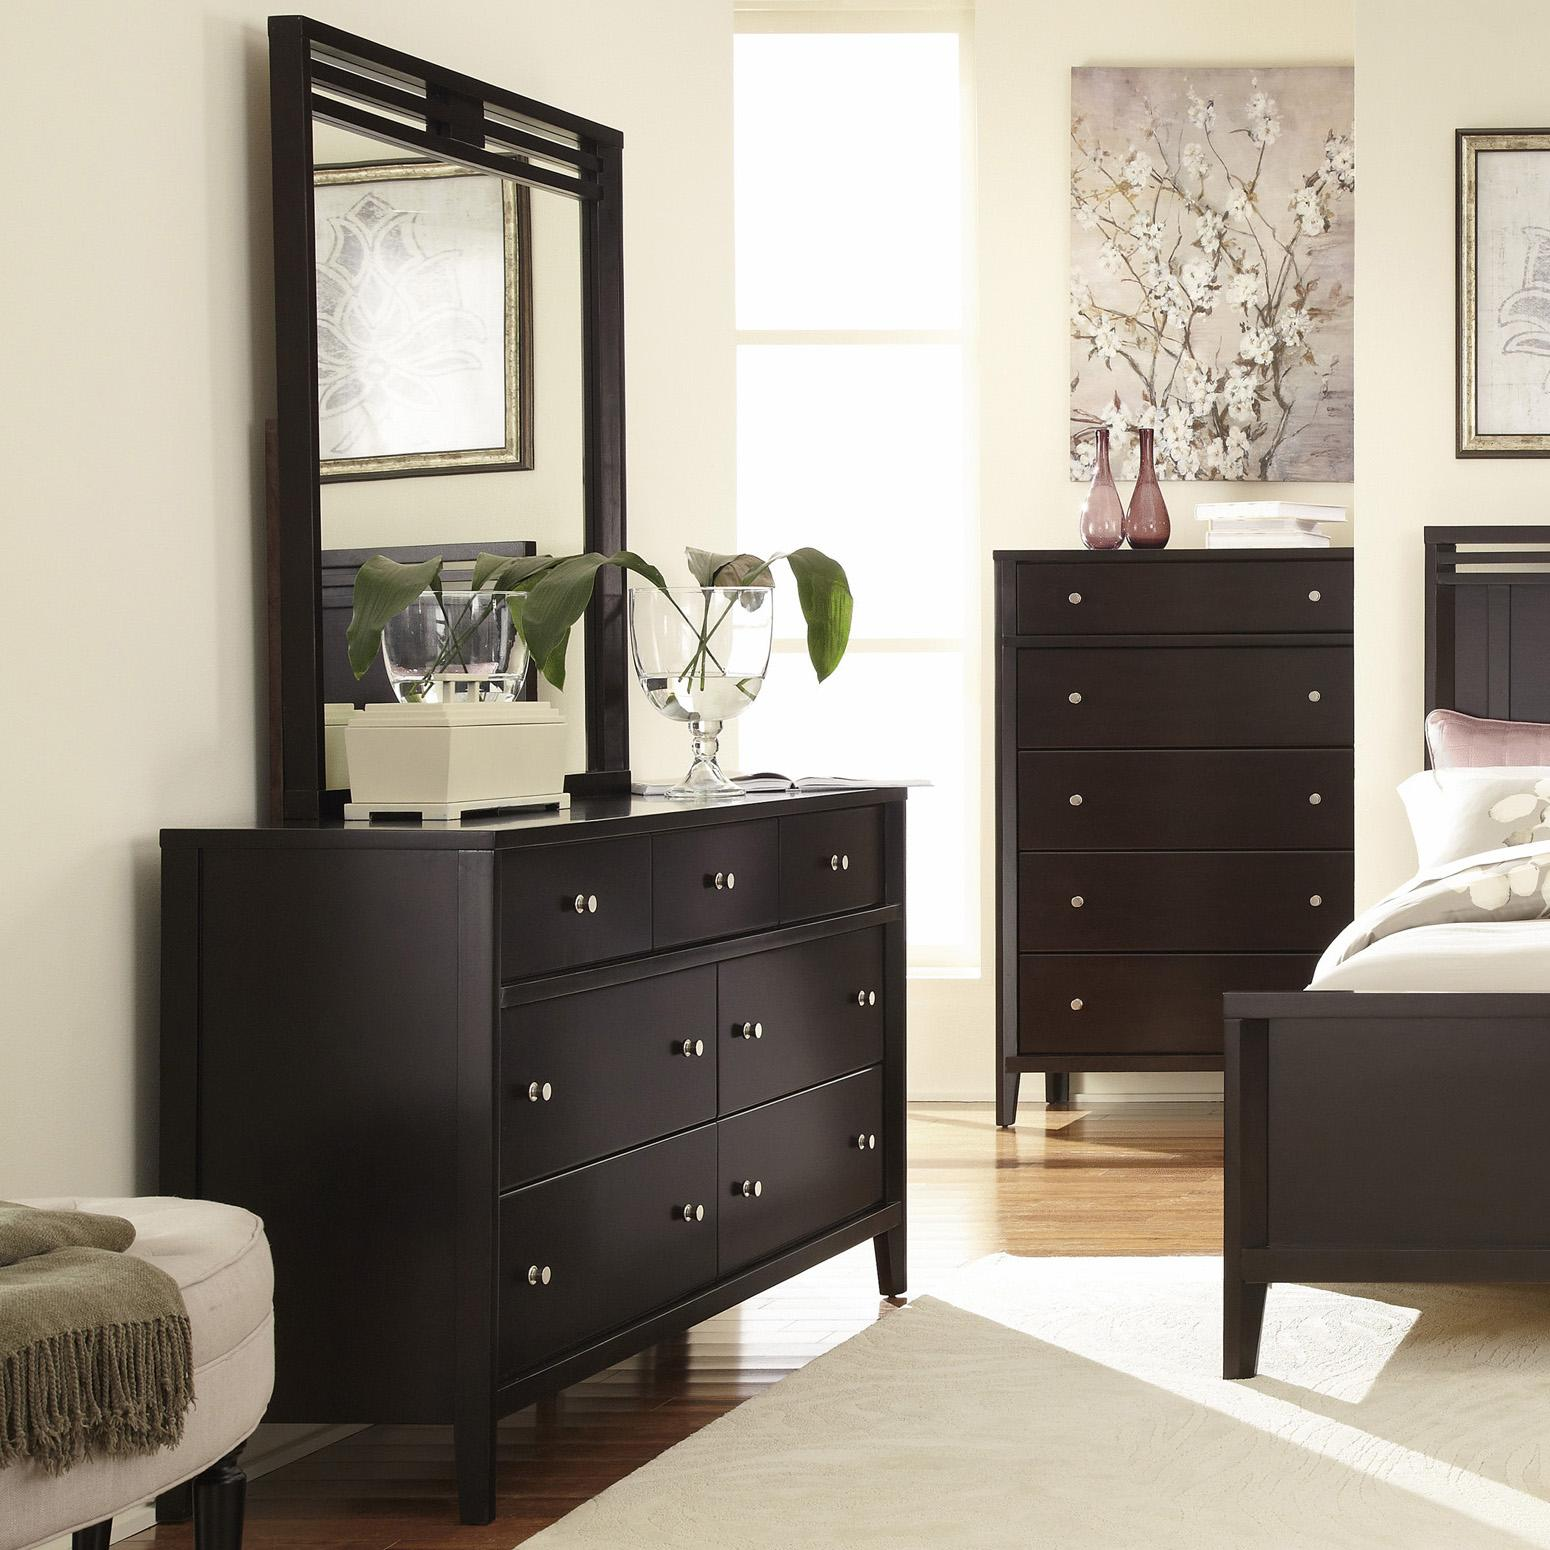 Belfort Select East Gate Dresser, 7 Dwr. & Mirror - Item Number: 355-457+401